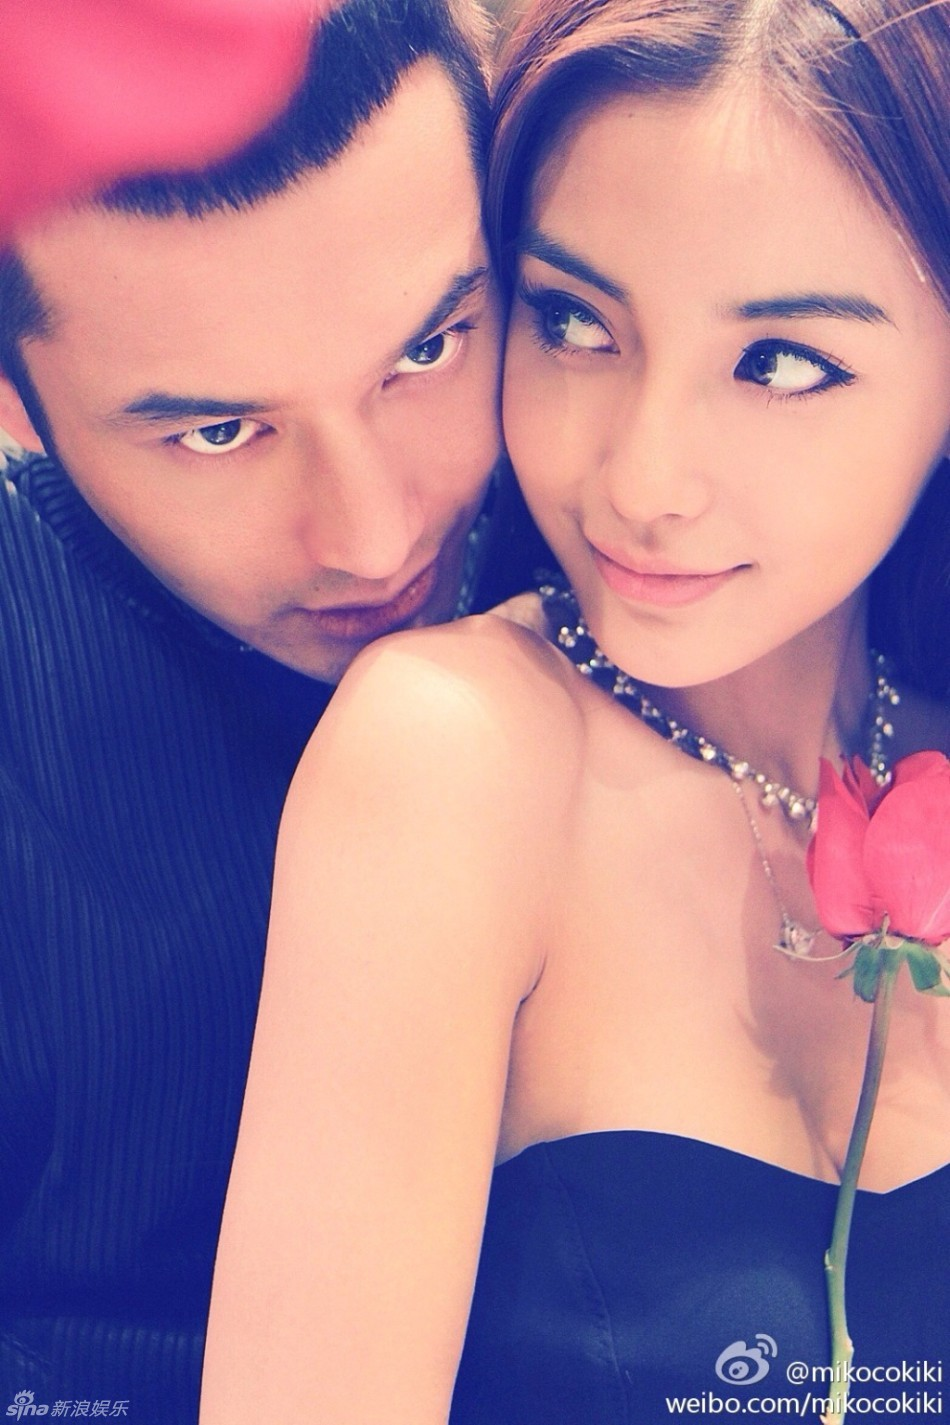 [Other] Huang Xiaoming and Angelababy are 'Officially ... | 950 x 1425 jpeg 238kB